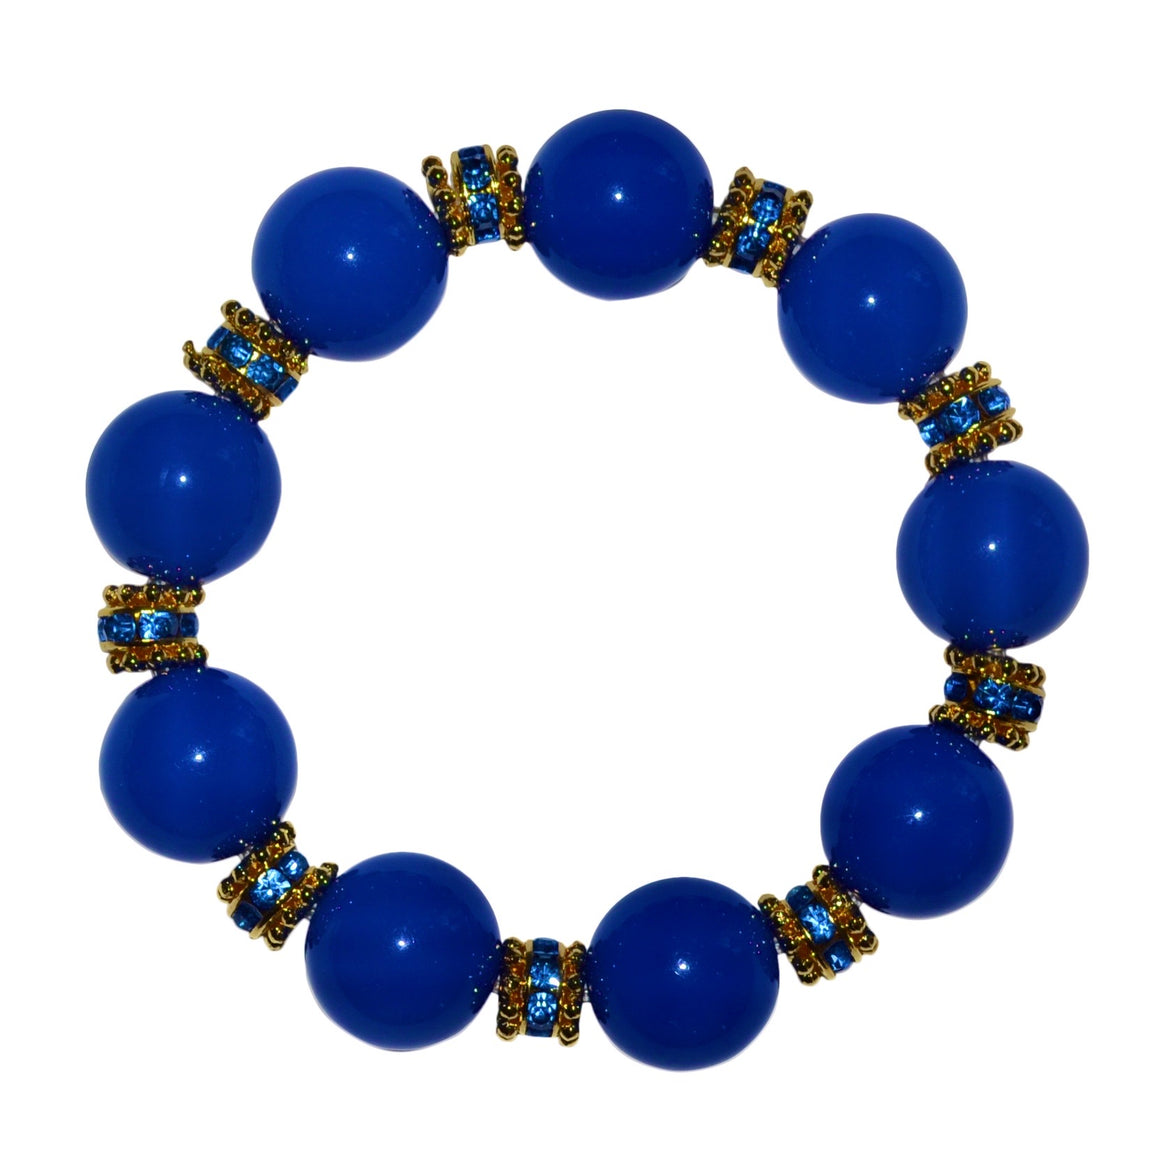 ELLIS ANYTIME BANGLE IN COBALT